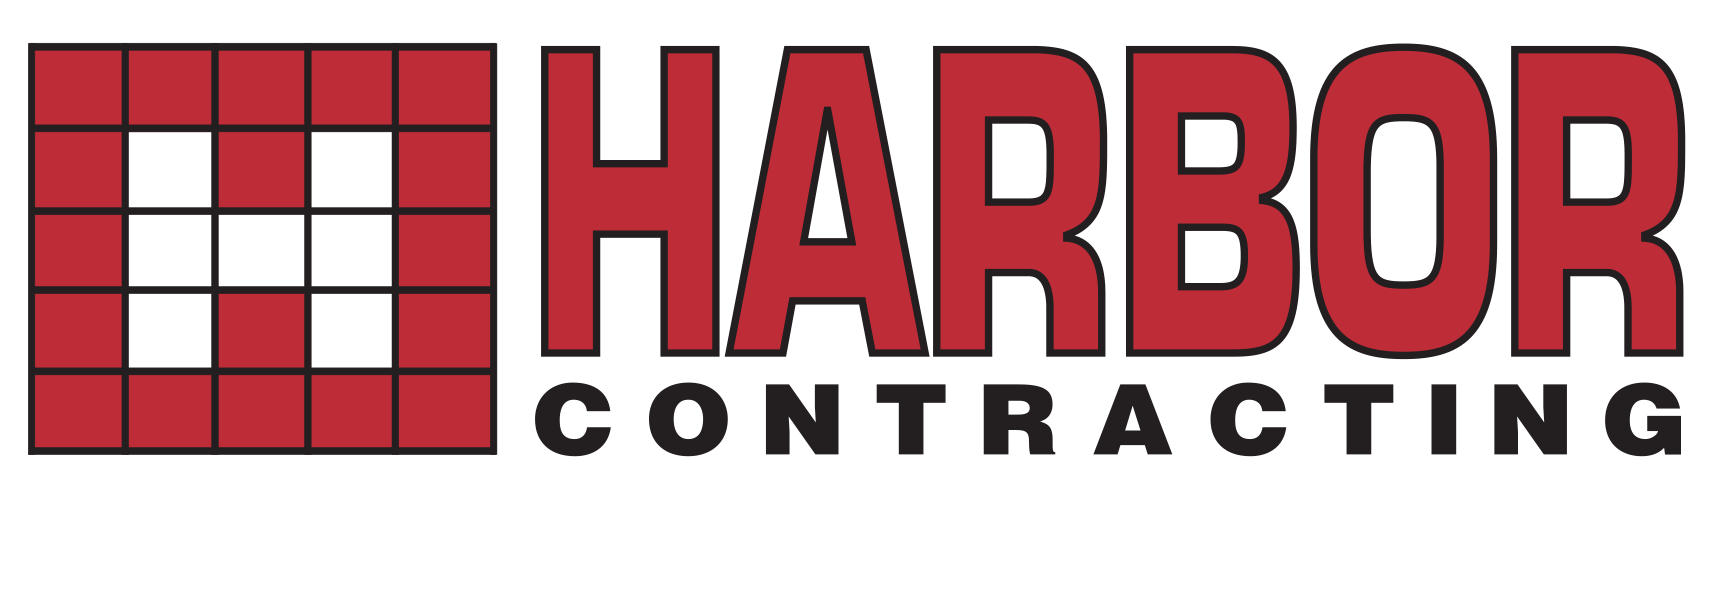 Harbor Contracting | Commercial Construction